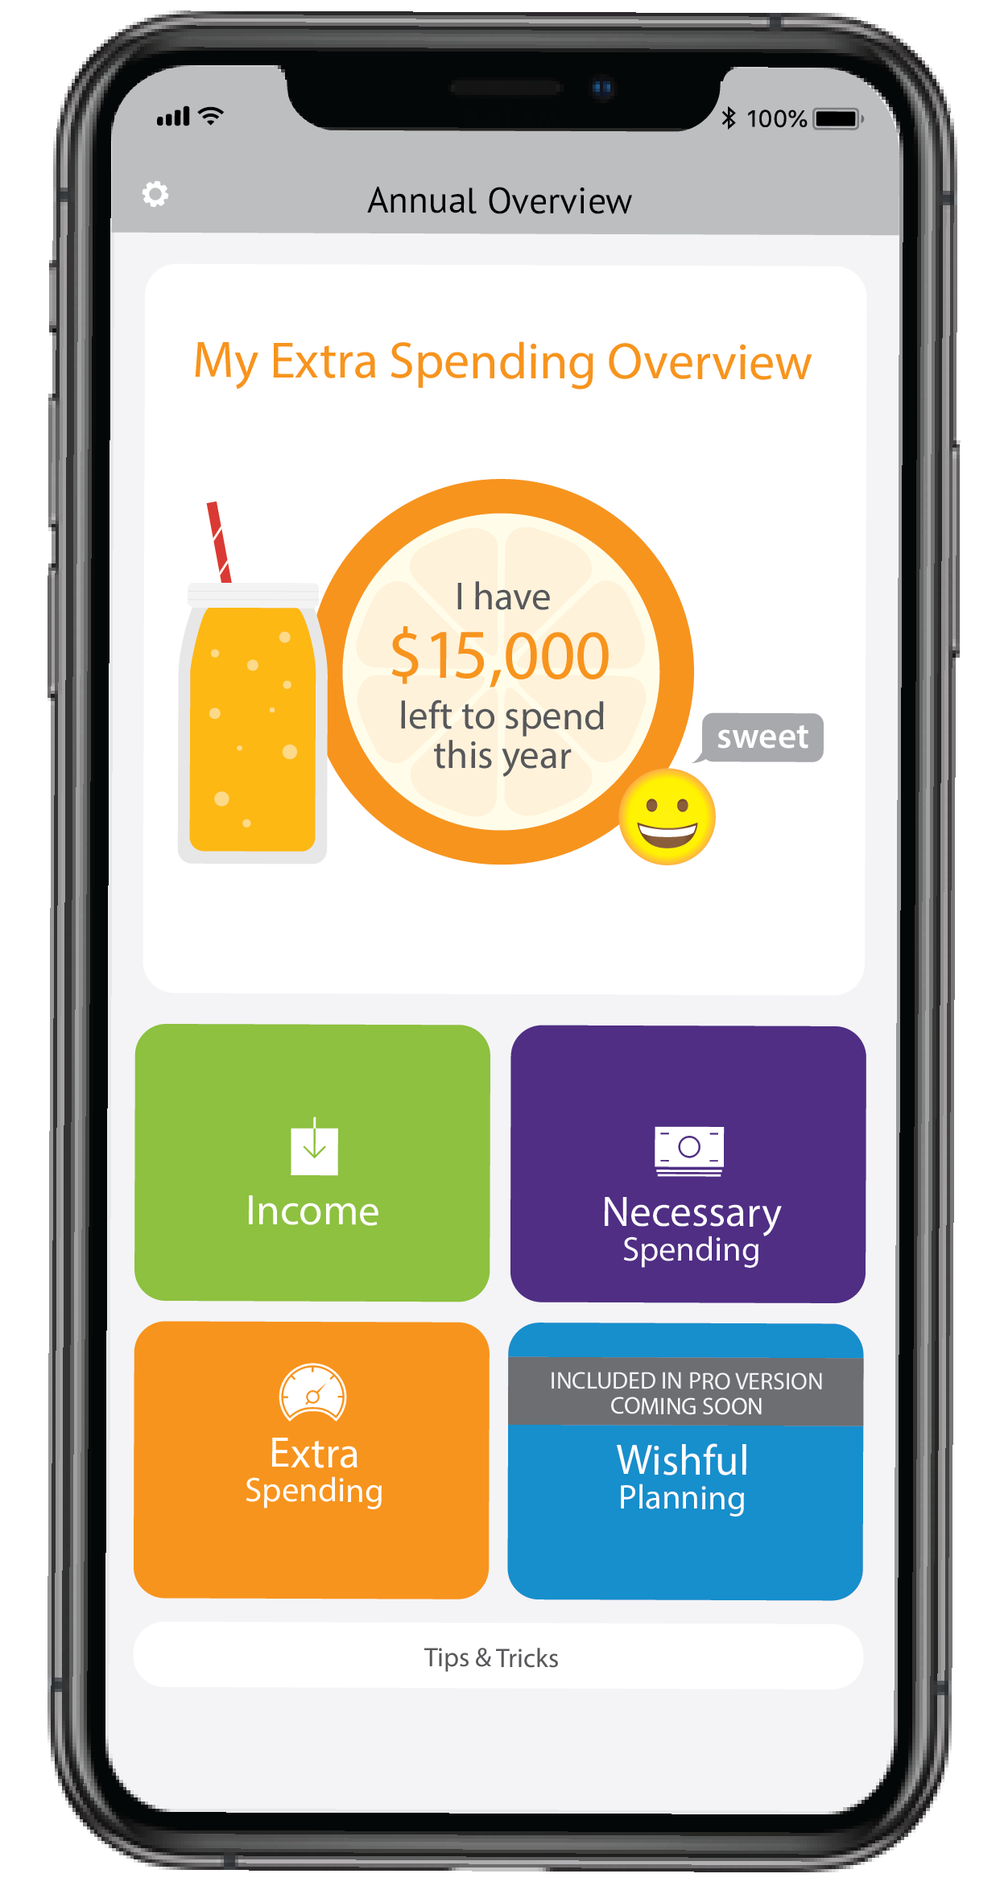 moneySweet_app_iPhone 8 Inc copy_small.png